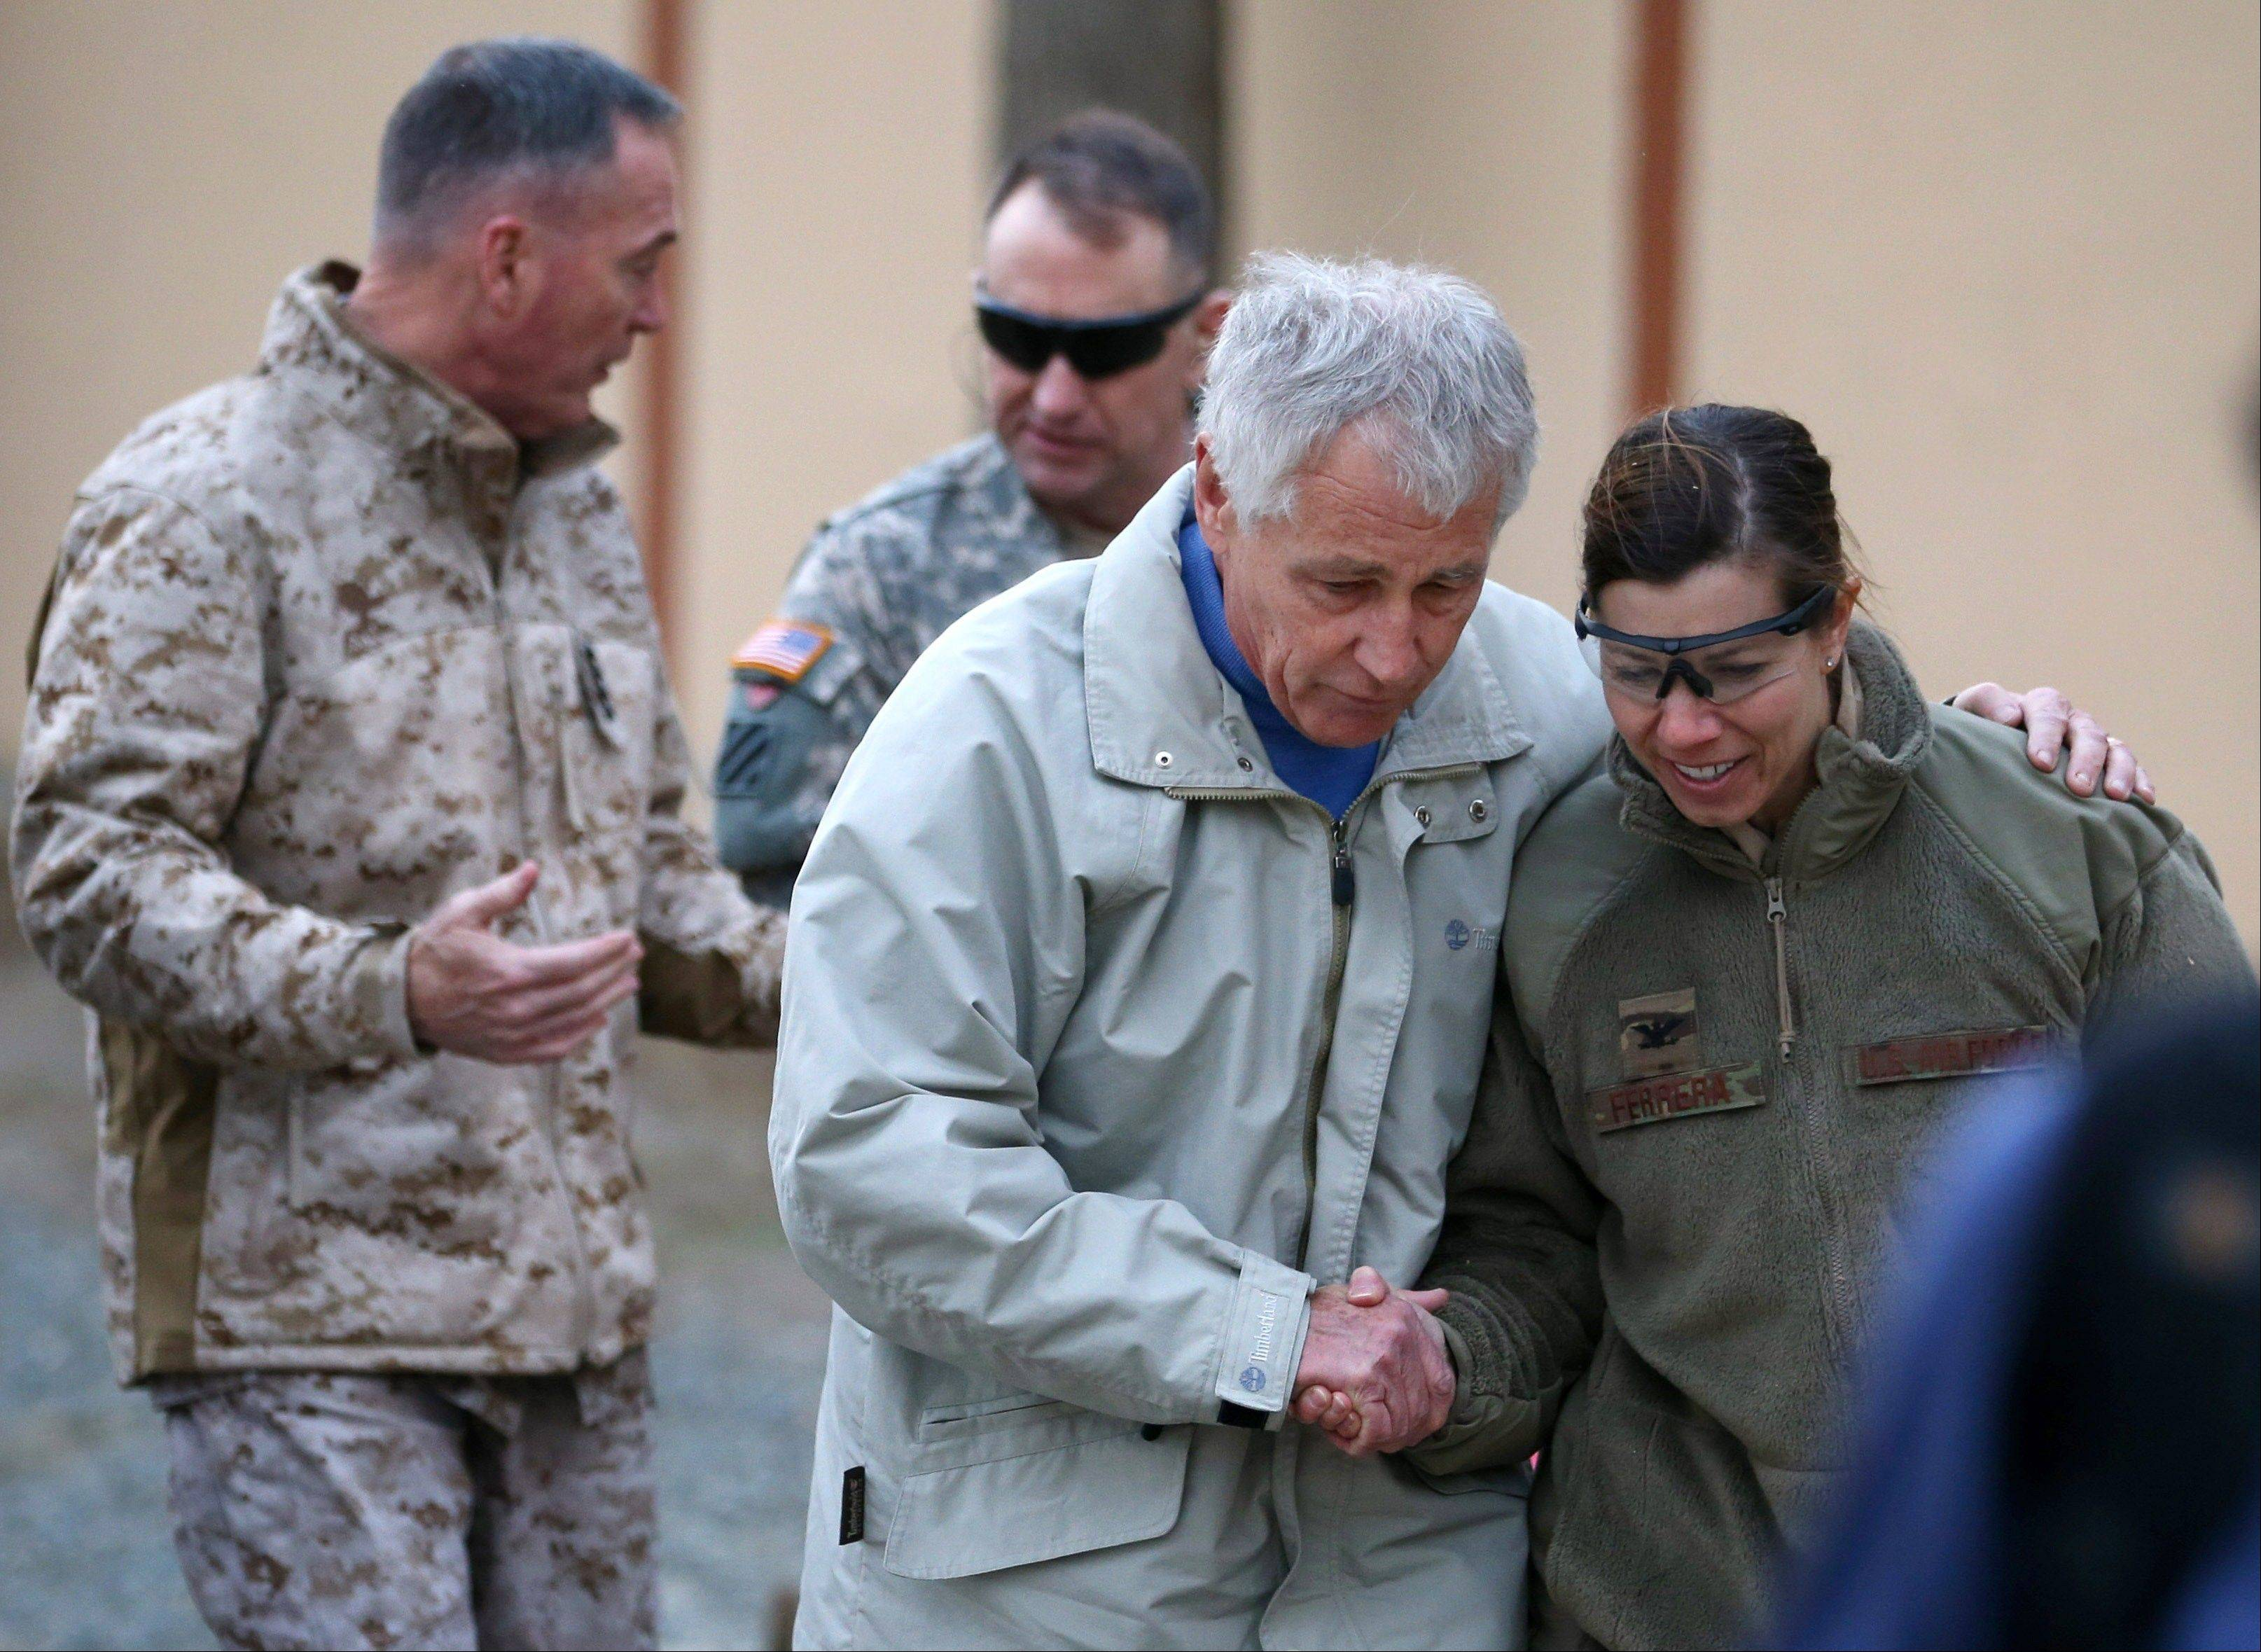 U.S. Secretary of Defense Chuck Hagel, center, is greeted Saturday by military personnel after arriving at International Security Assistance Force Headquarters (ISAF) in Kabul, Afghanistan.